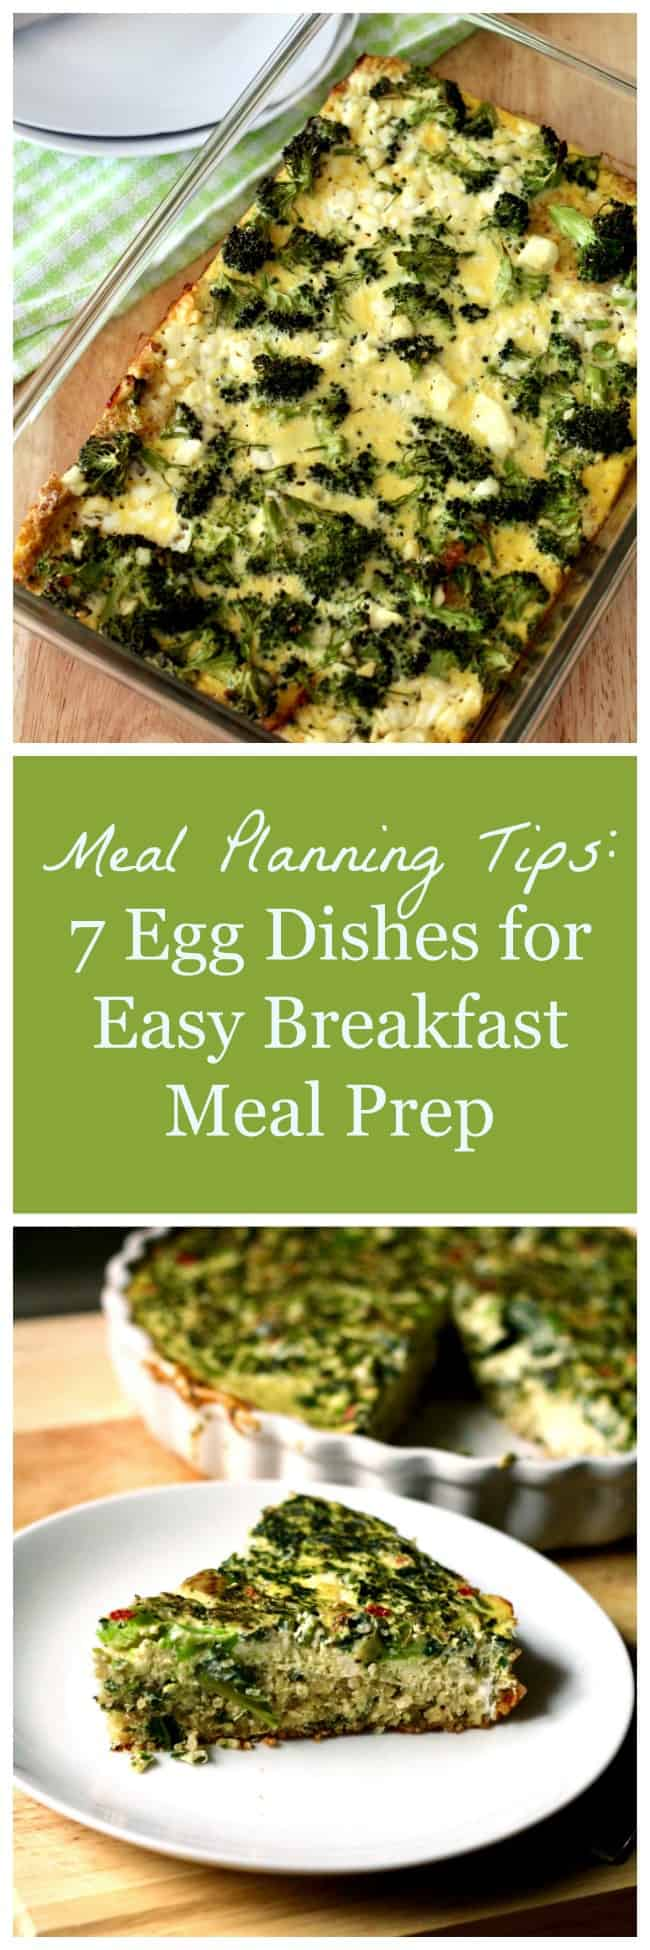 Meal Planning Tips: Egg Dishes for Easy Breakfast Meal Prep